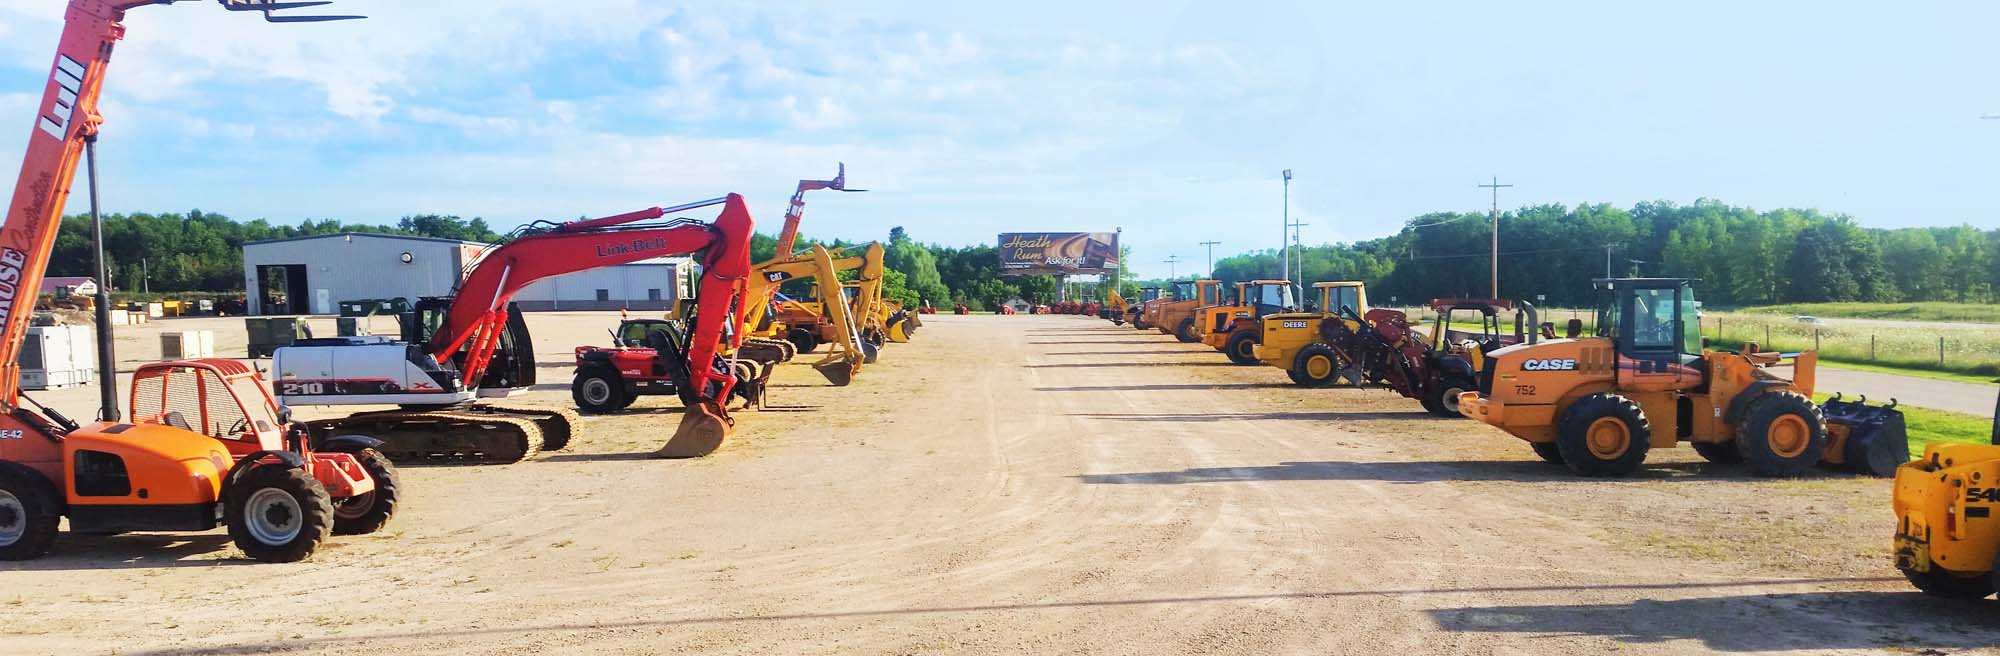 D&B Construction Equipment